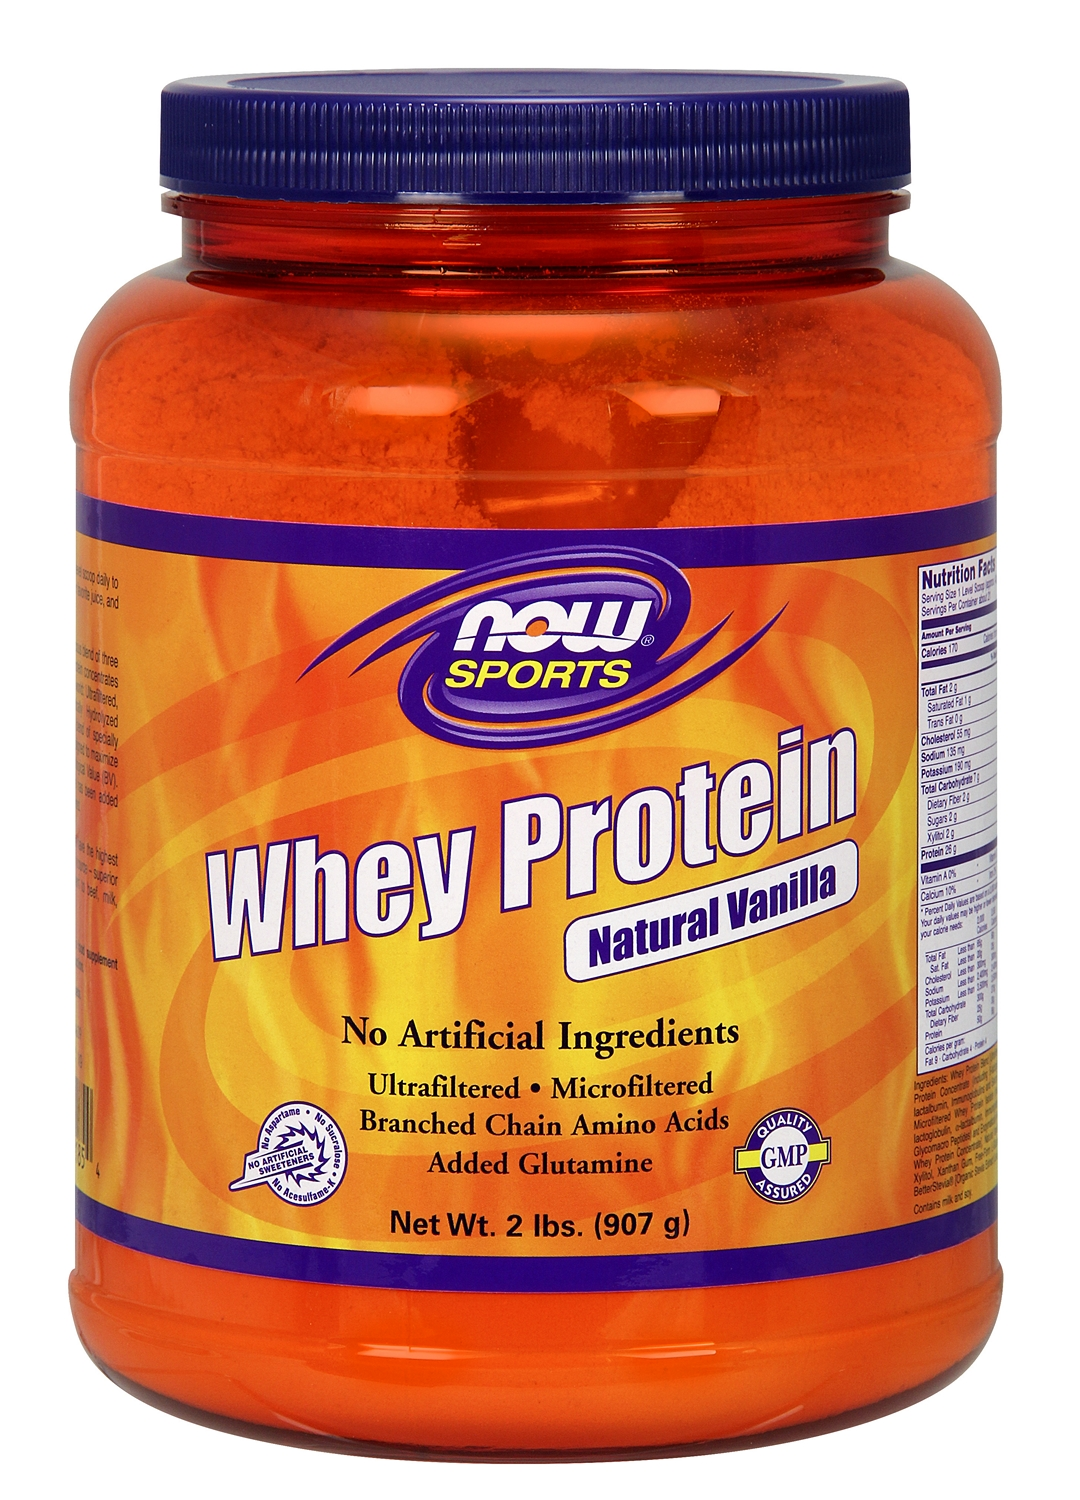 Whey Protein Natural Vanilla 2 lbs (908 g) by NOW